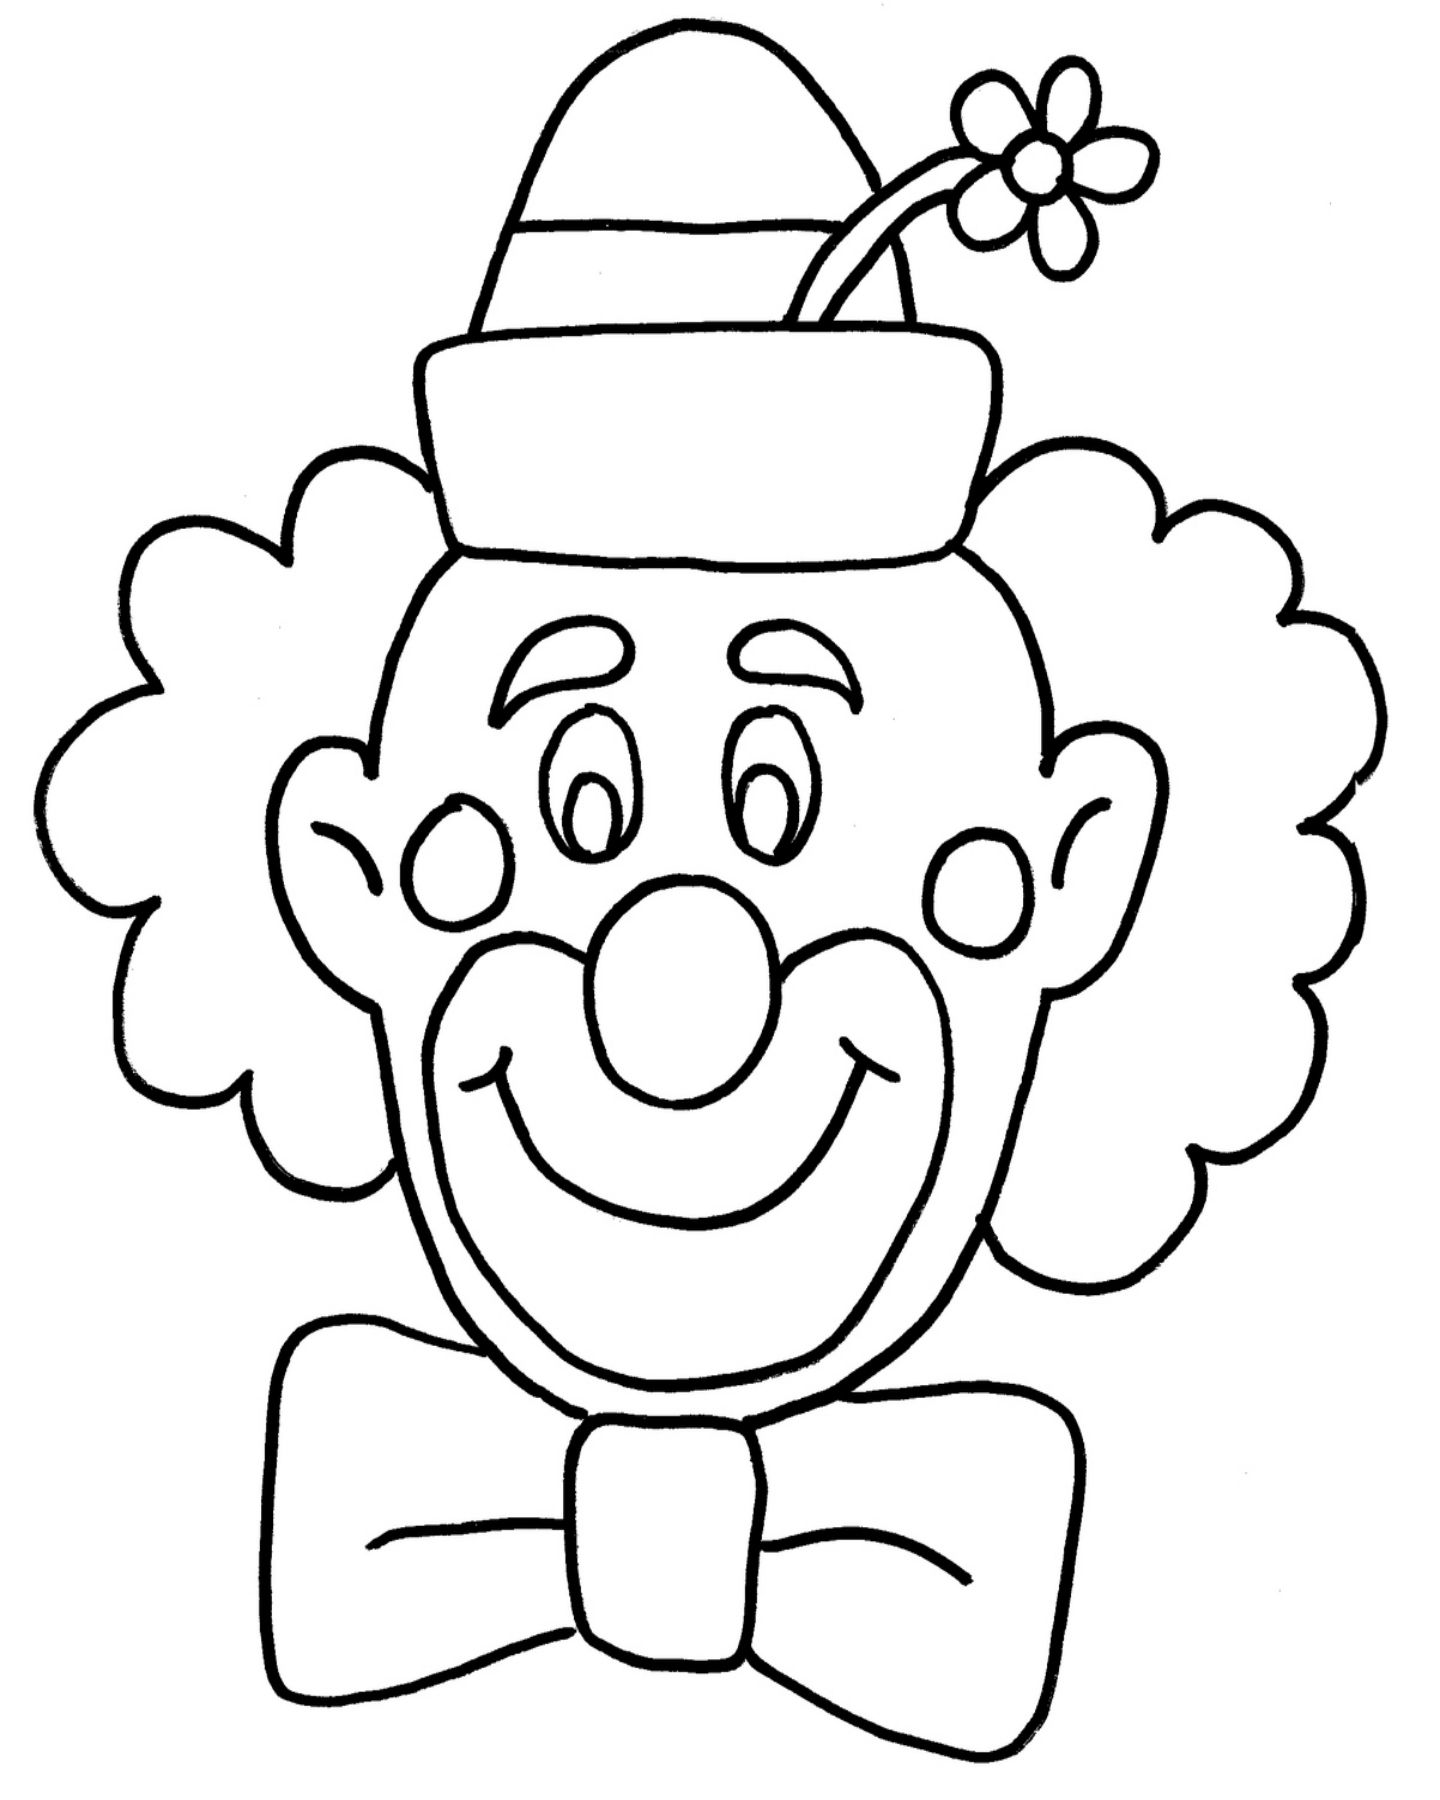 Free Clown Coloring Page | where are my crayons? | Pinterest | Red ...